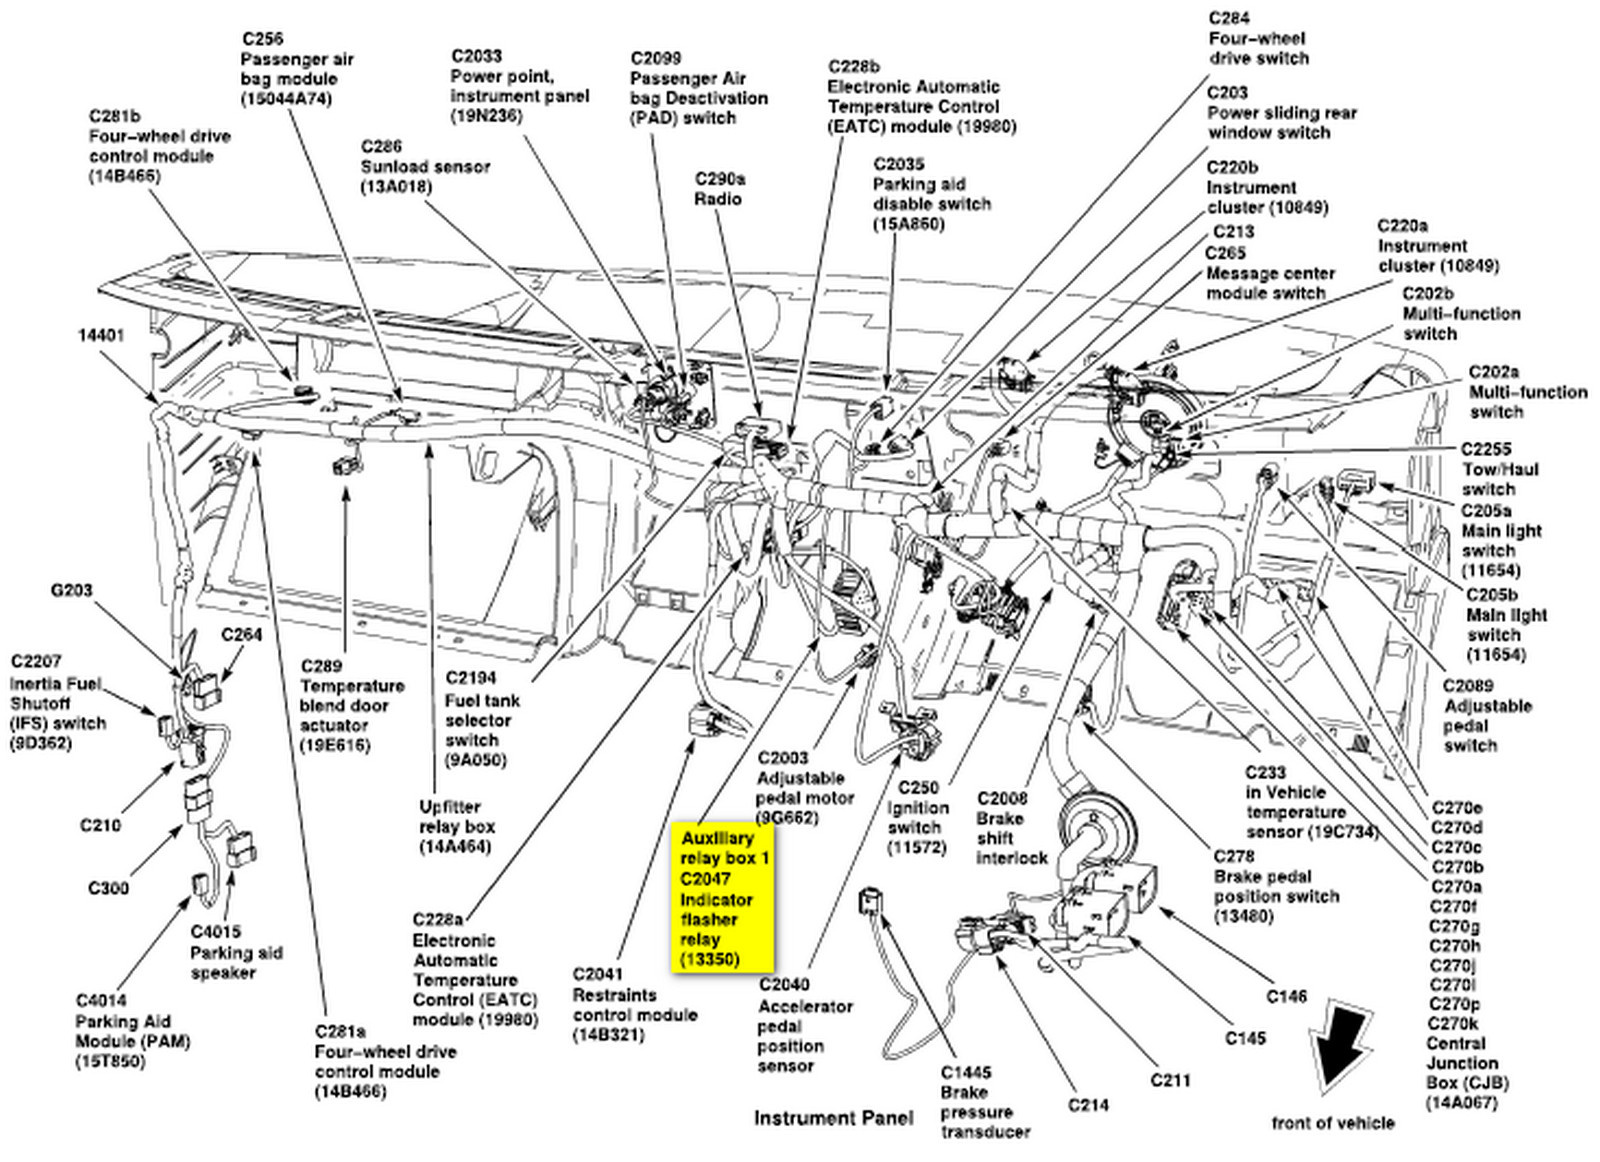 2012 ford e350 fuse diagram